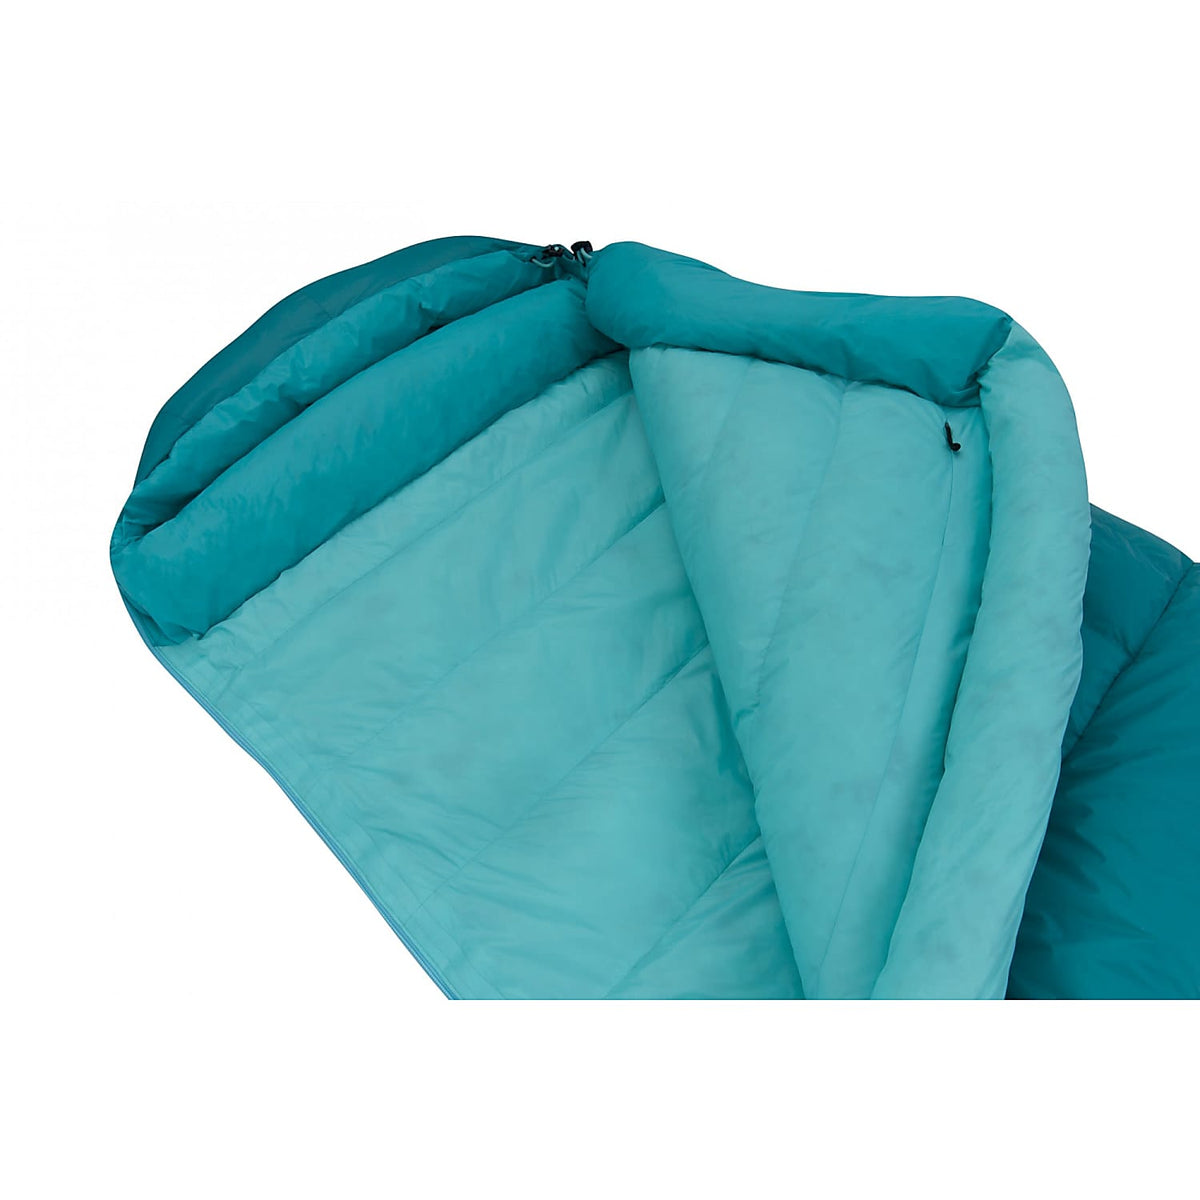 Sea to Summit Altitude II Women's sleeping bag, close up on material